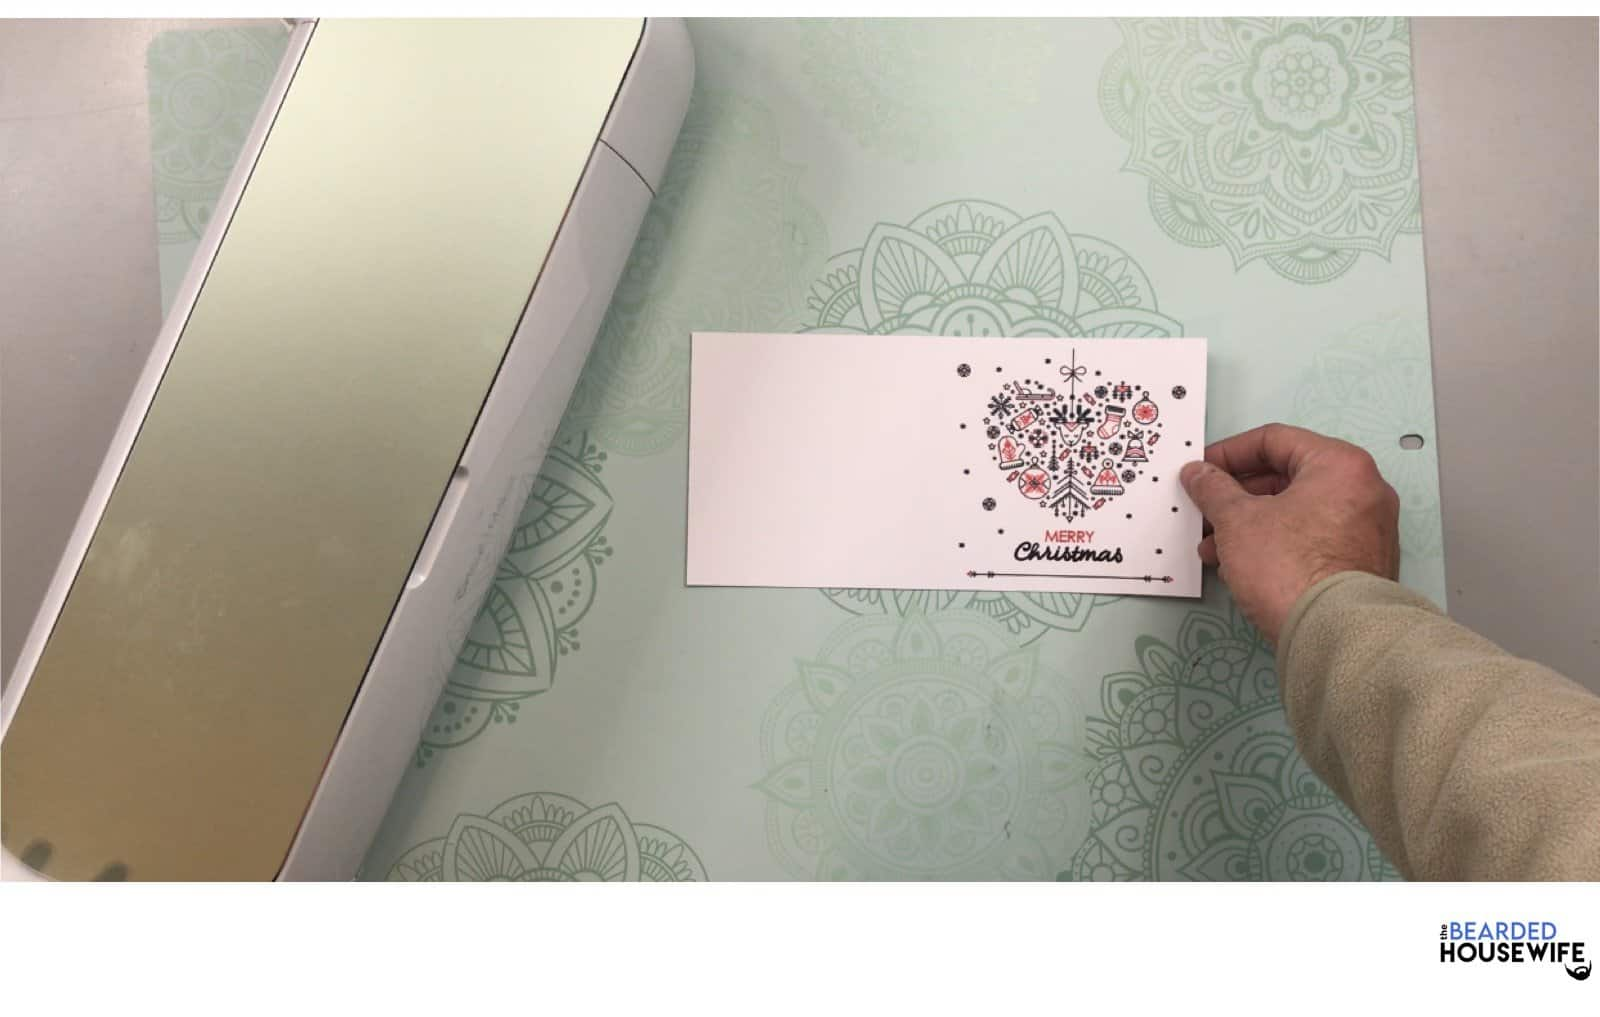 now your card is ready to fold and personalize